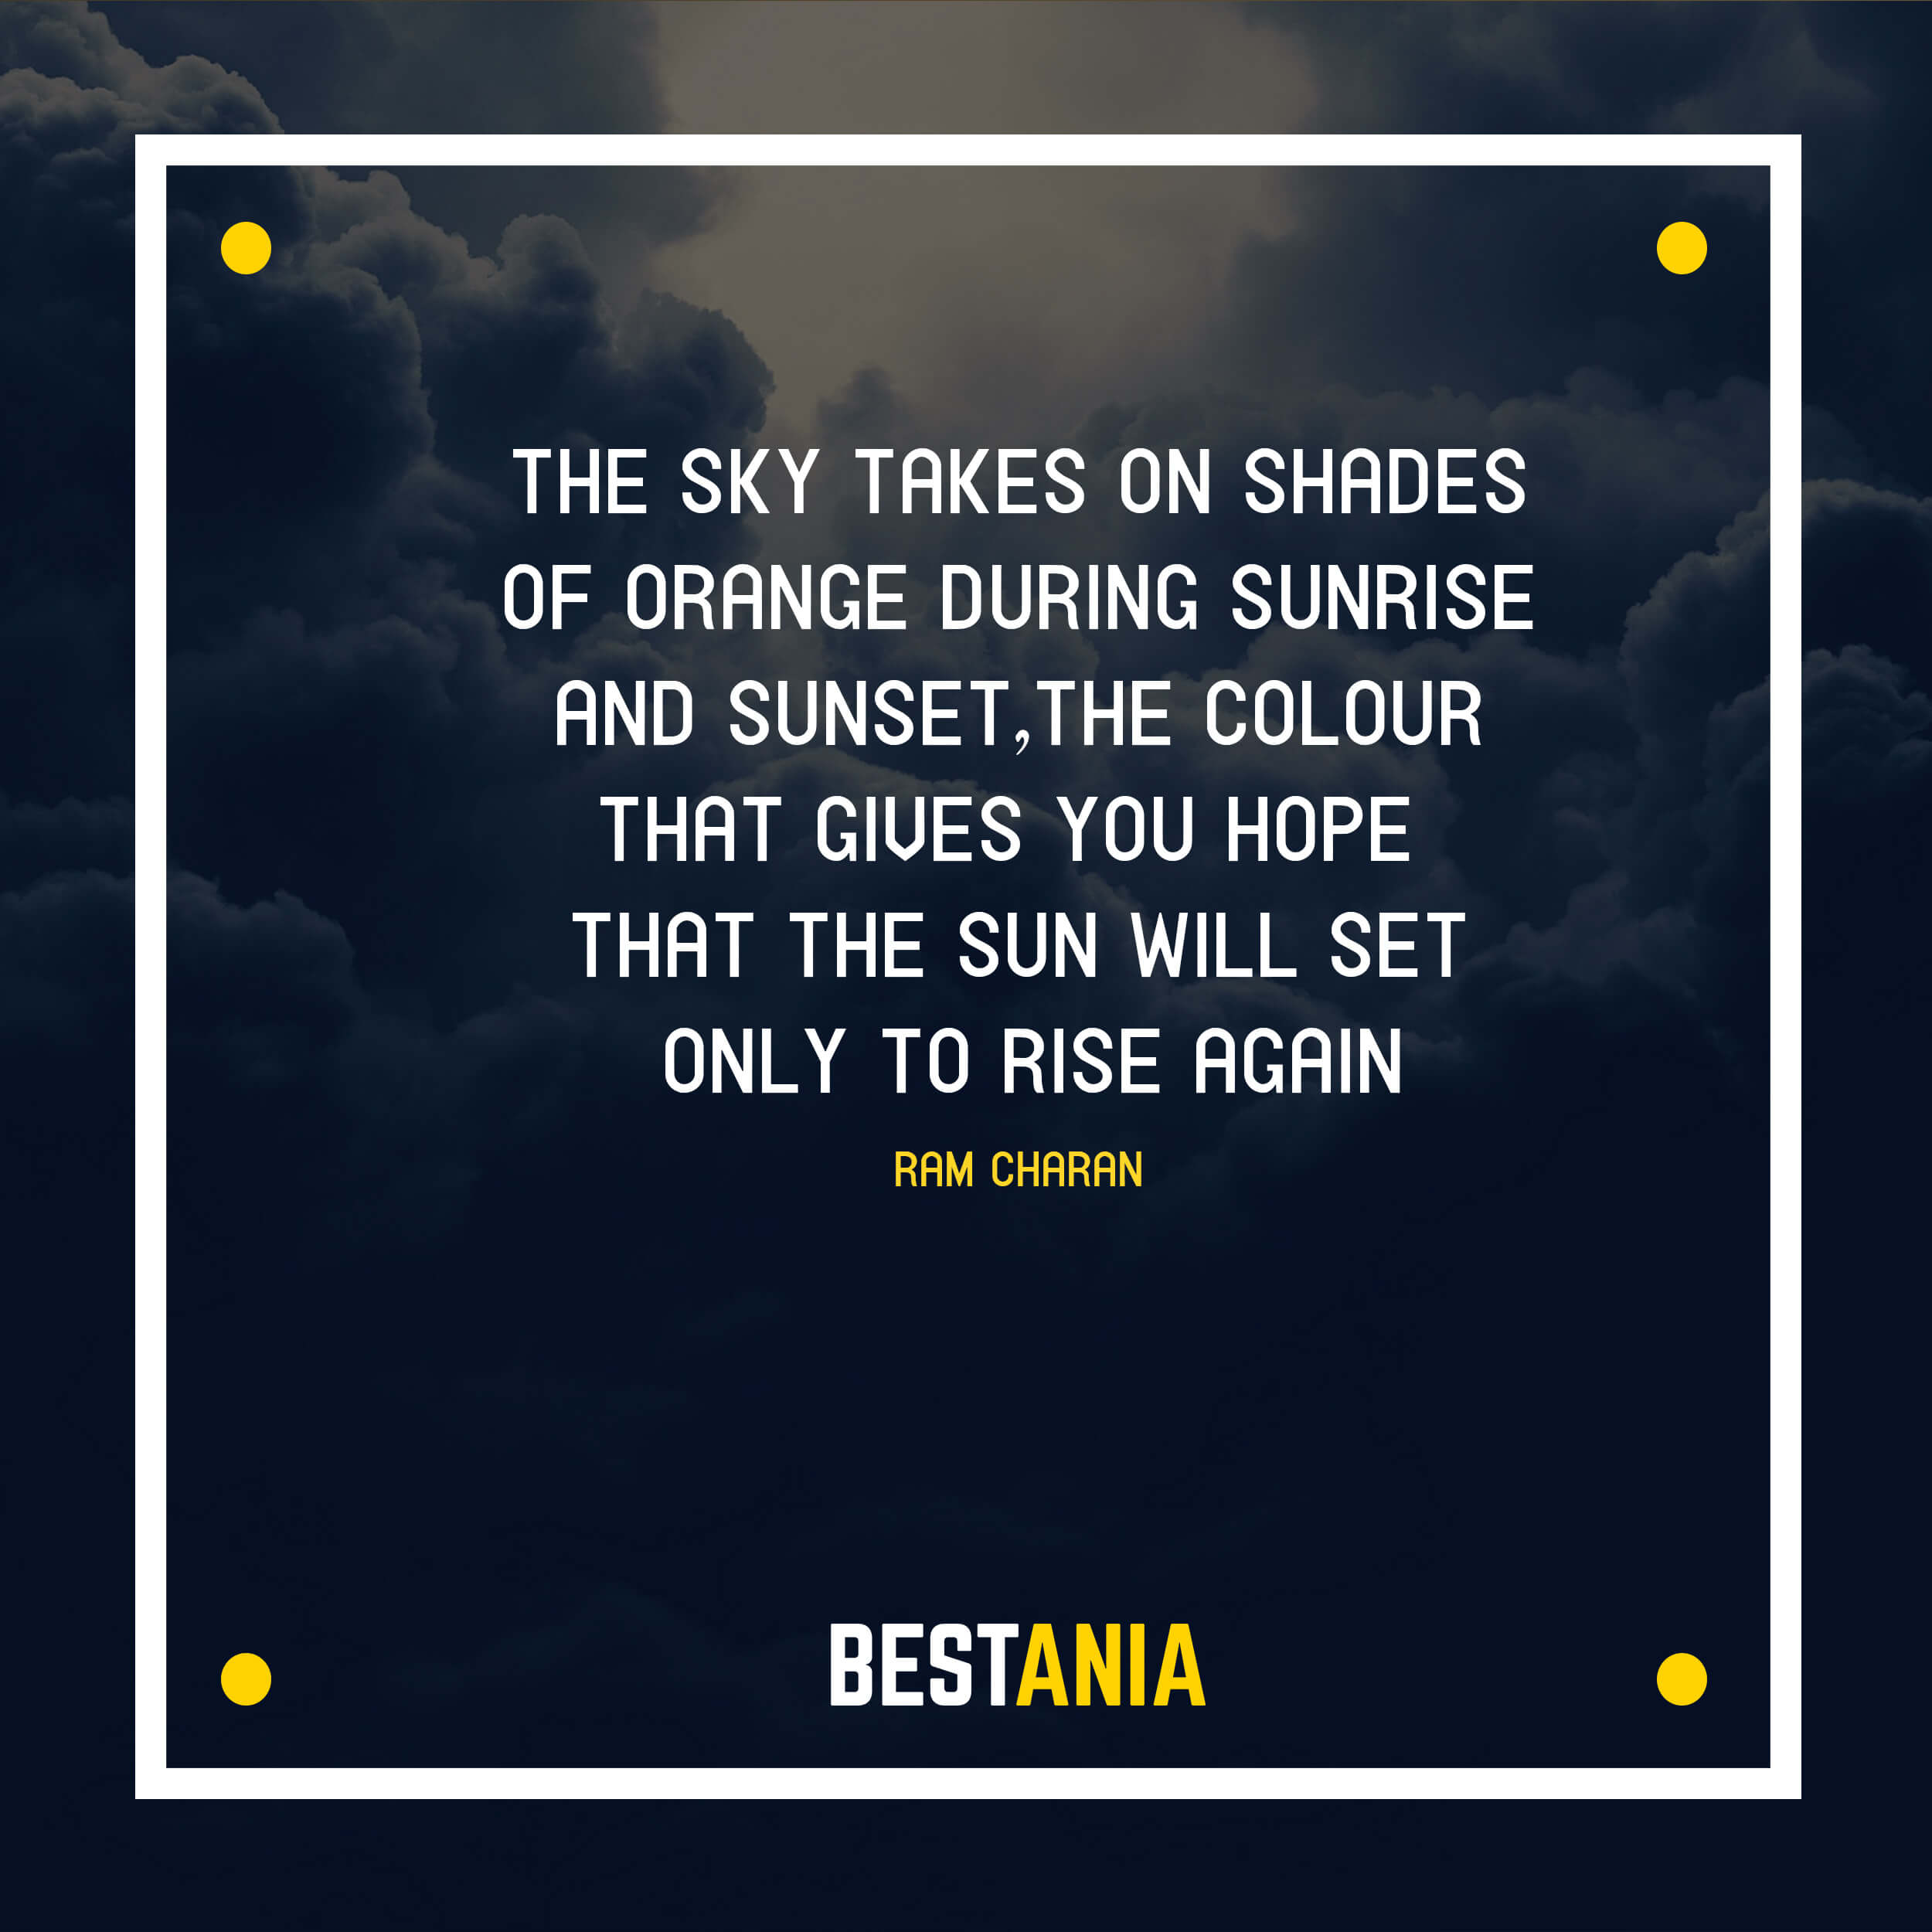 """""""THE SKY TAKES ON SHADES OF ORANGE DURING SUNRISE AND SUNSET, THE COLOUR THAT GIVES YOU HOPE THAT THE SUN WILL SET ONLY TO RISE AGAIN."""" RAM CHARAN"""